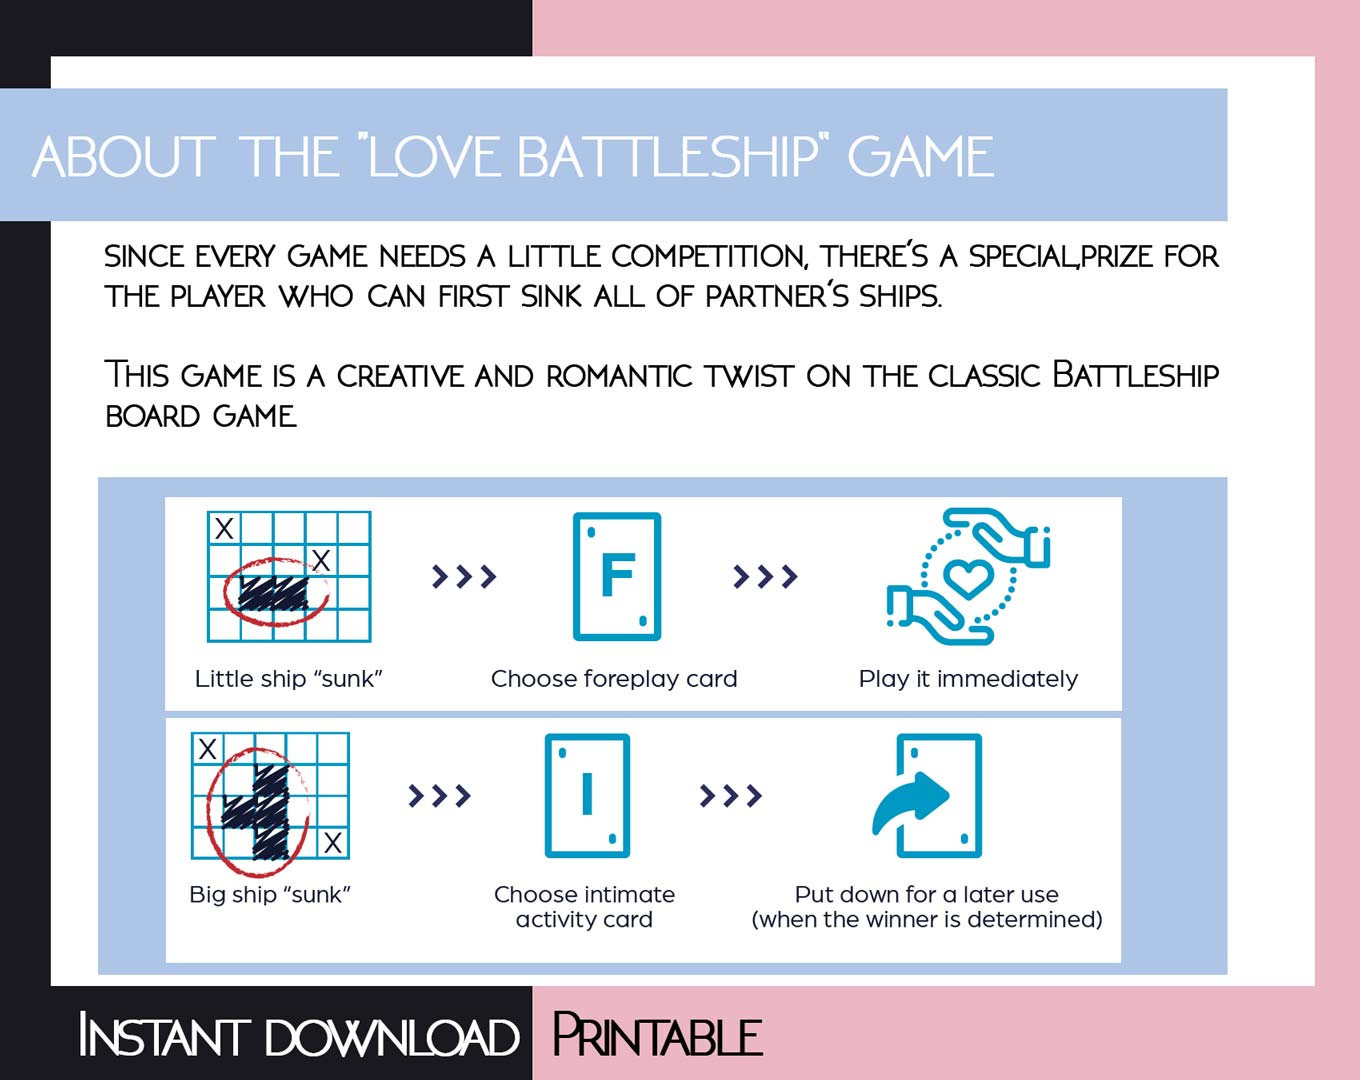 Printable Love Battleship game PDF